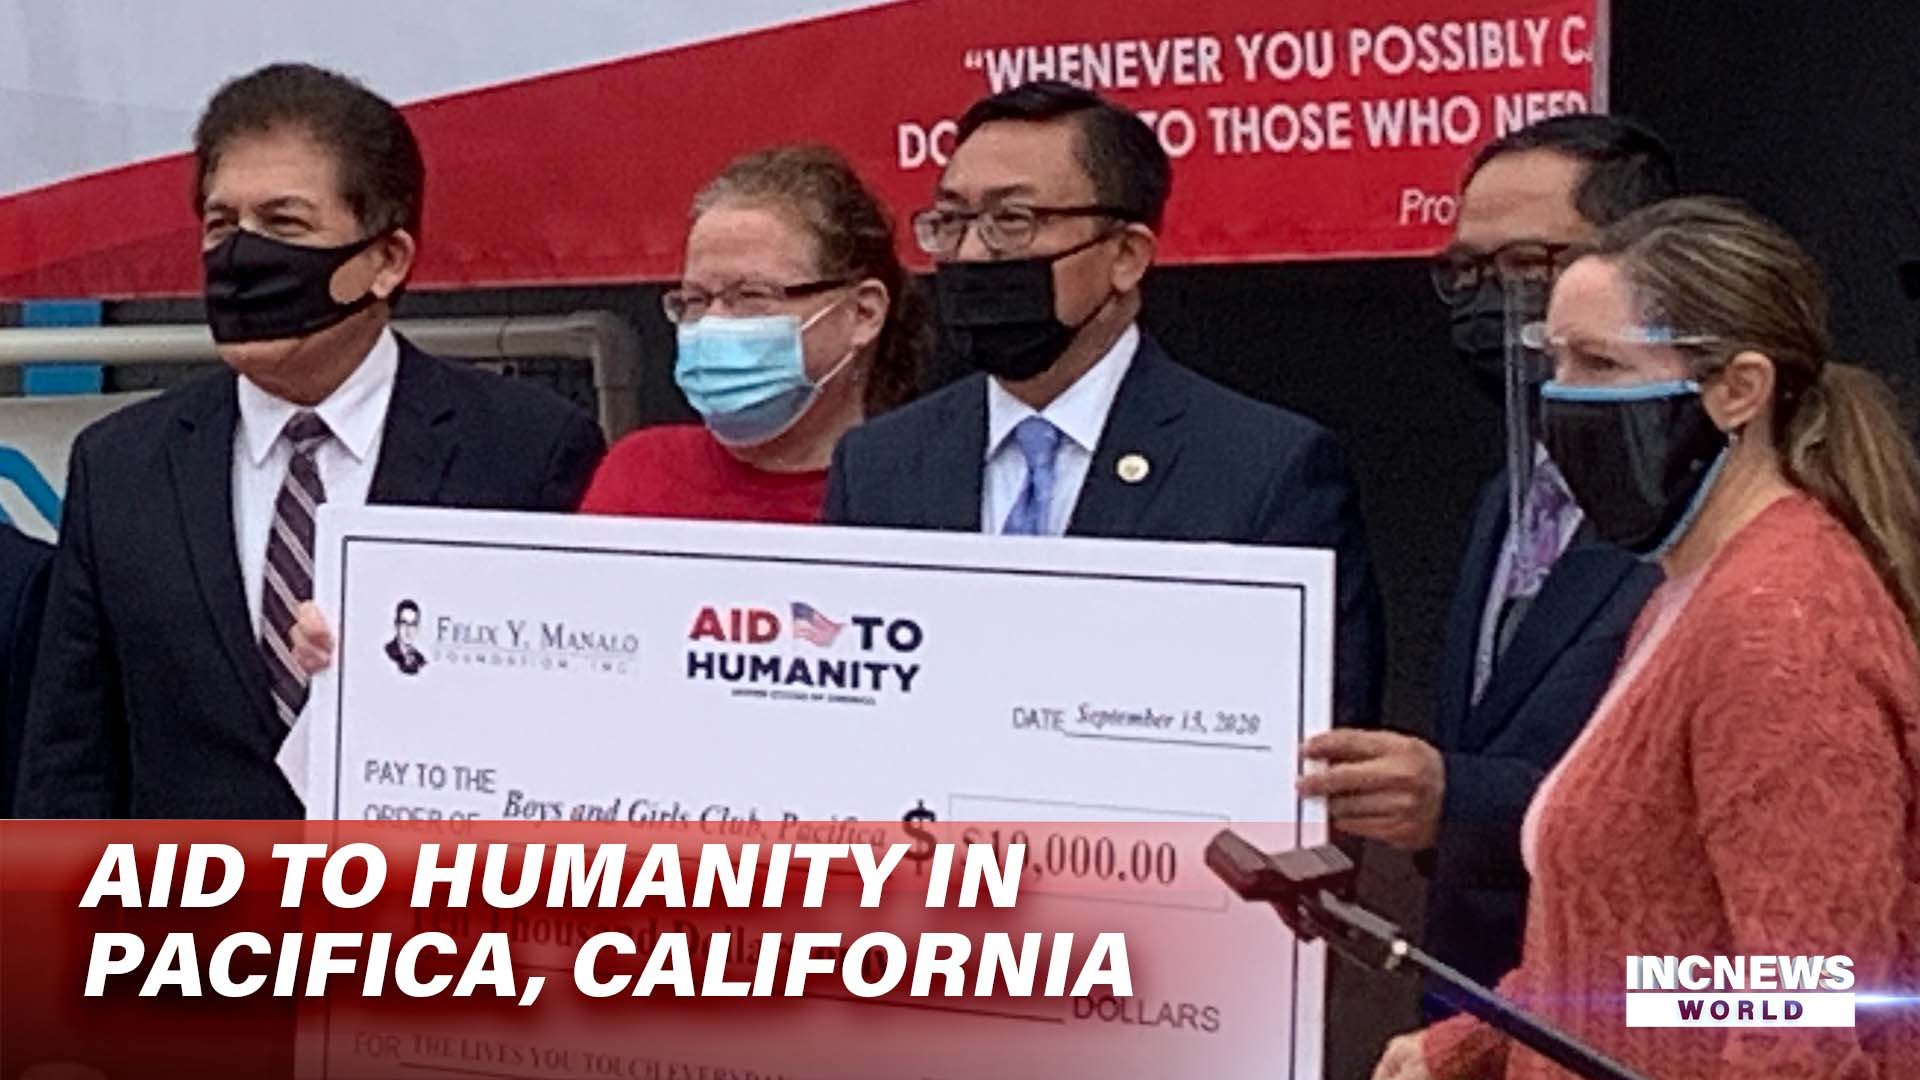 Aid to Humanity in Pacifica, California